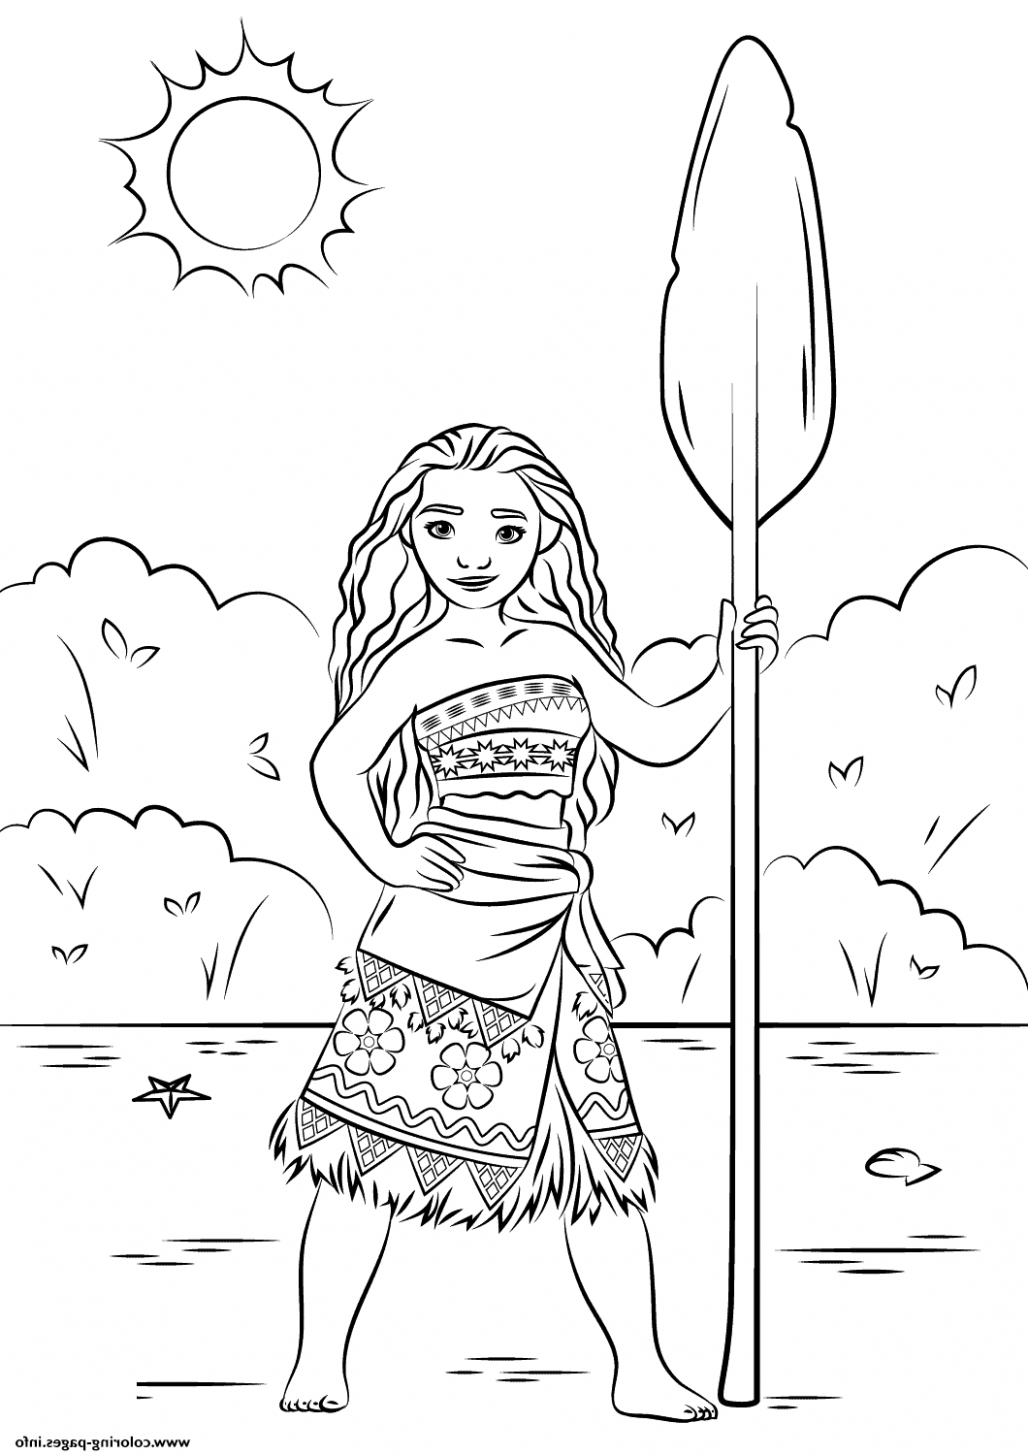 Five Lessons Ive Learned From Coloring Pages Disney Princess Moana Coloring Moana Coloring Pages Moana Coloring Princess Coloring Pages